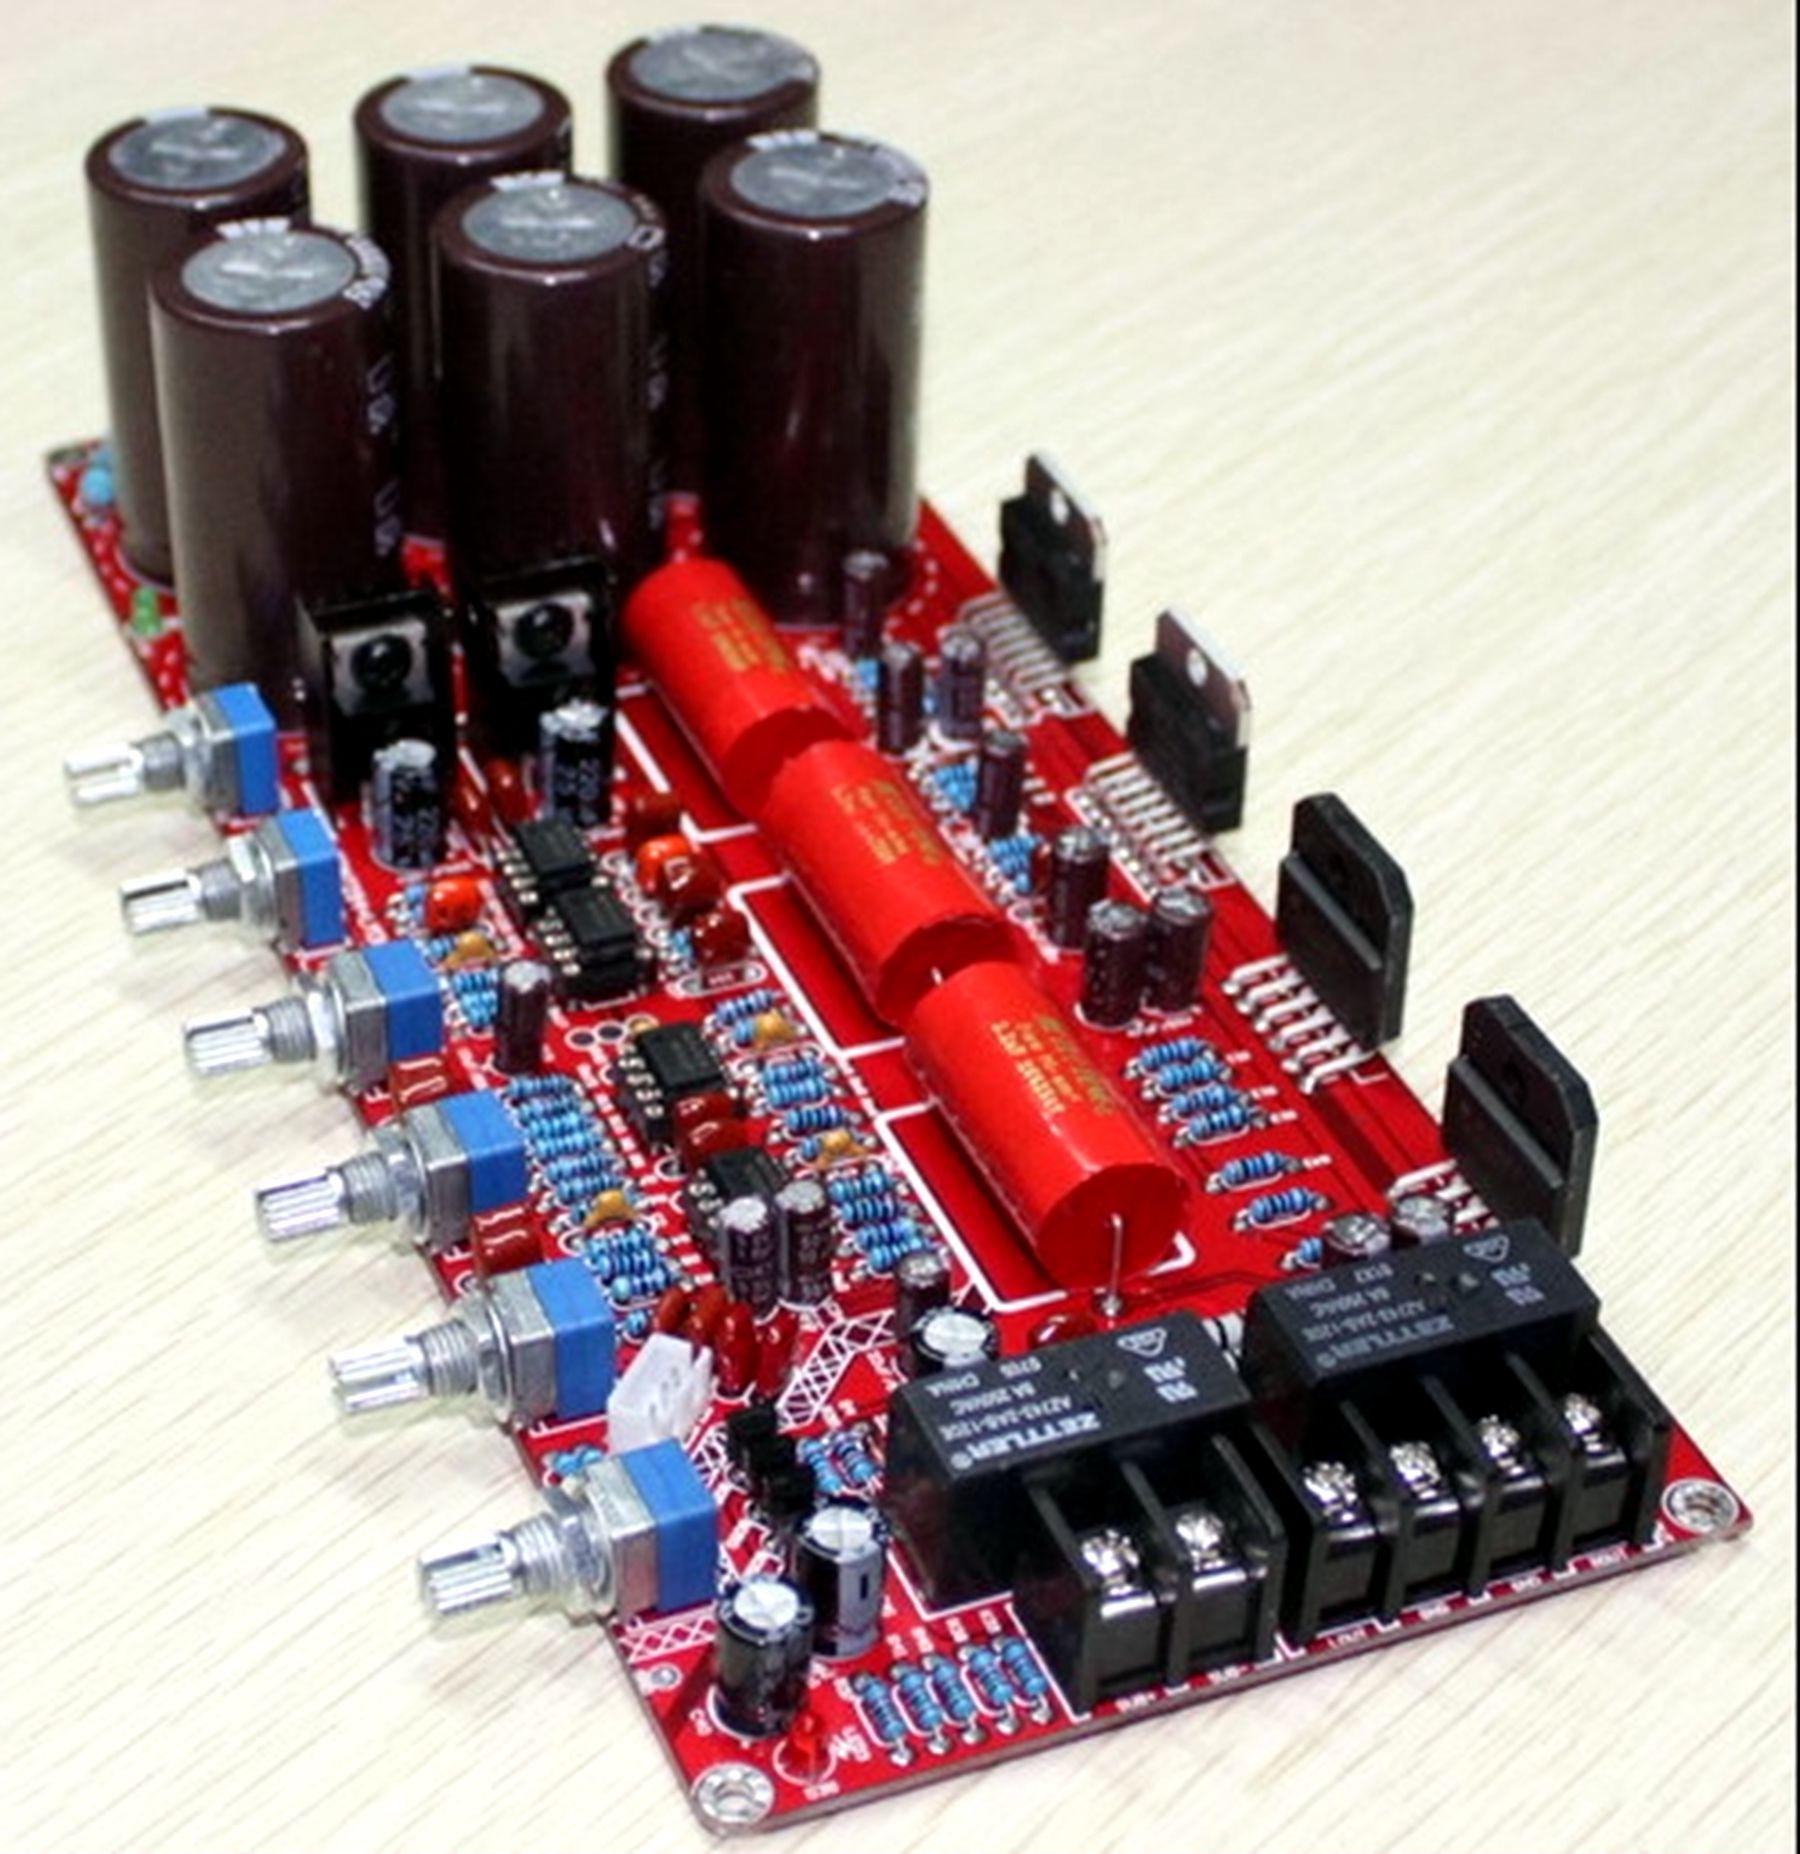 Best Tda7294 Lm3886 21 Perfect Combination Amplifier Board Under Circuit Dynamic Power With Ic Dmos Bridge Potentiometer From Left To Right The Bass Frequencies And Overall Volume Of Channel Treble